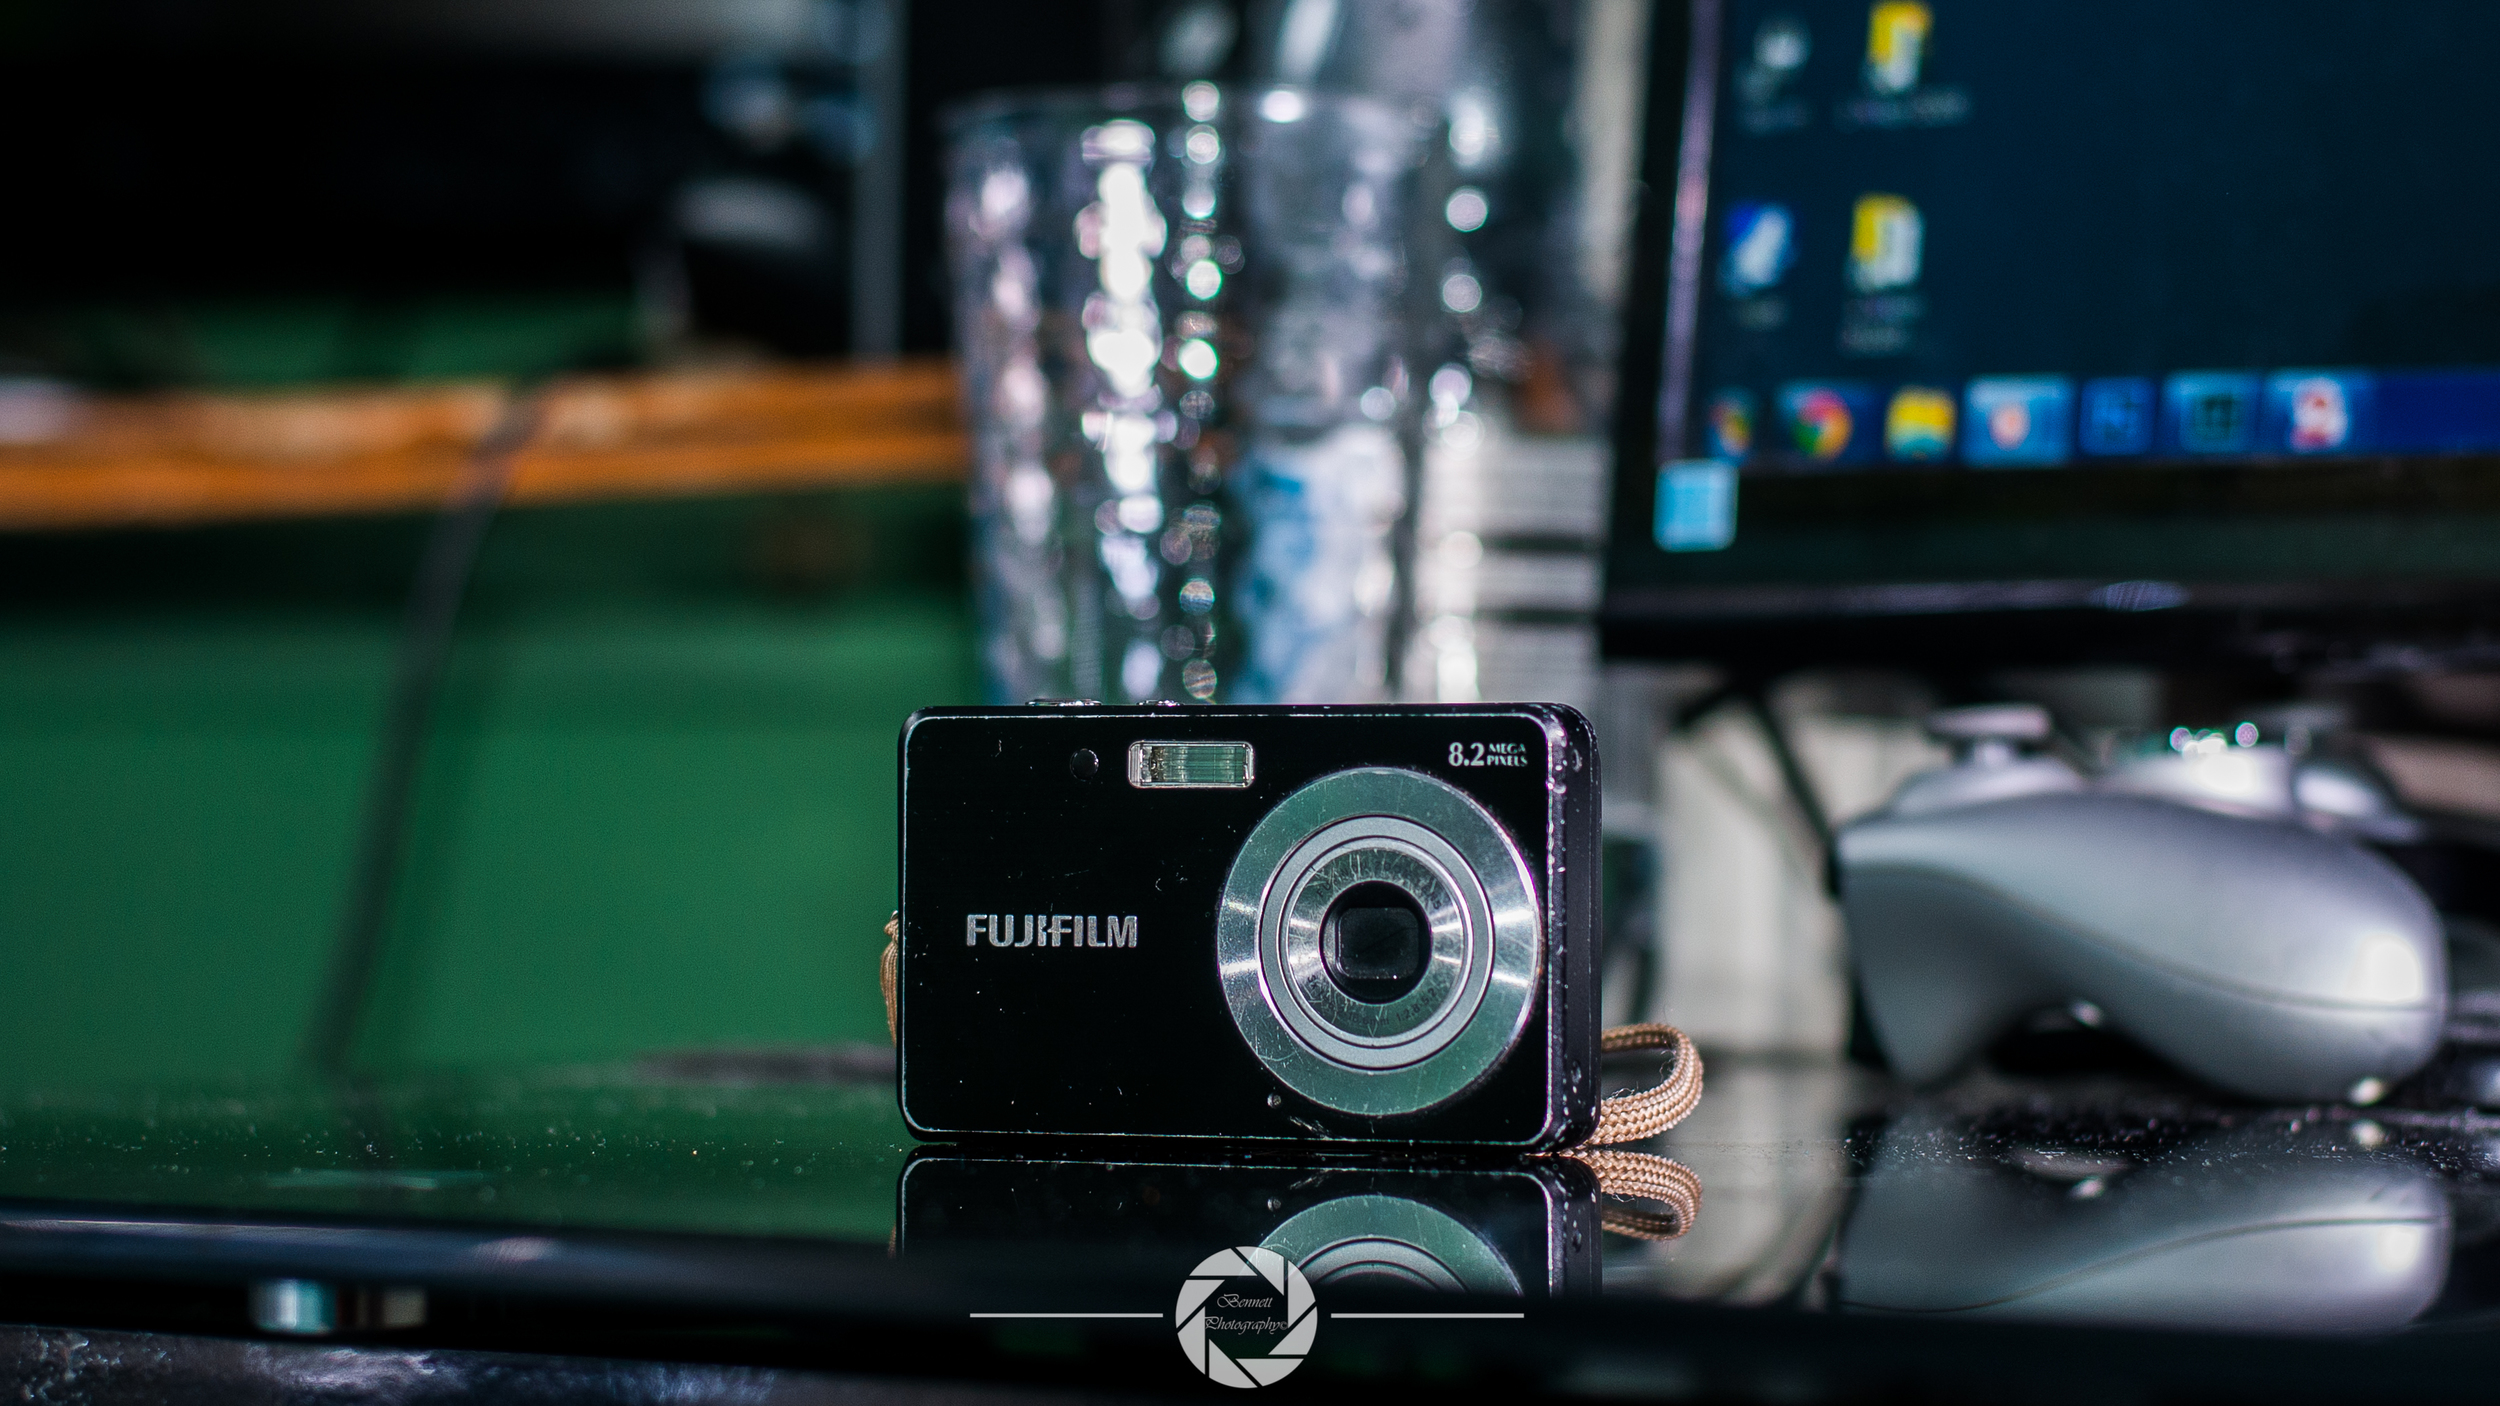 Fujifilm J10 point and shoot